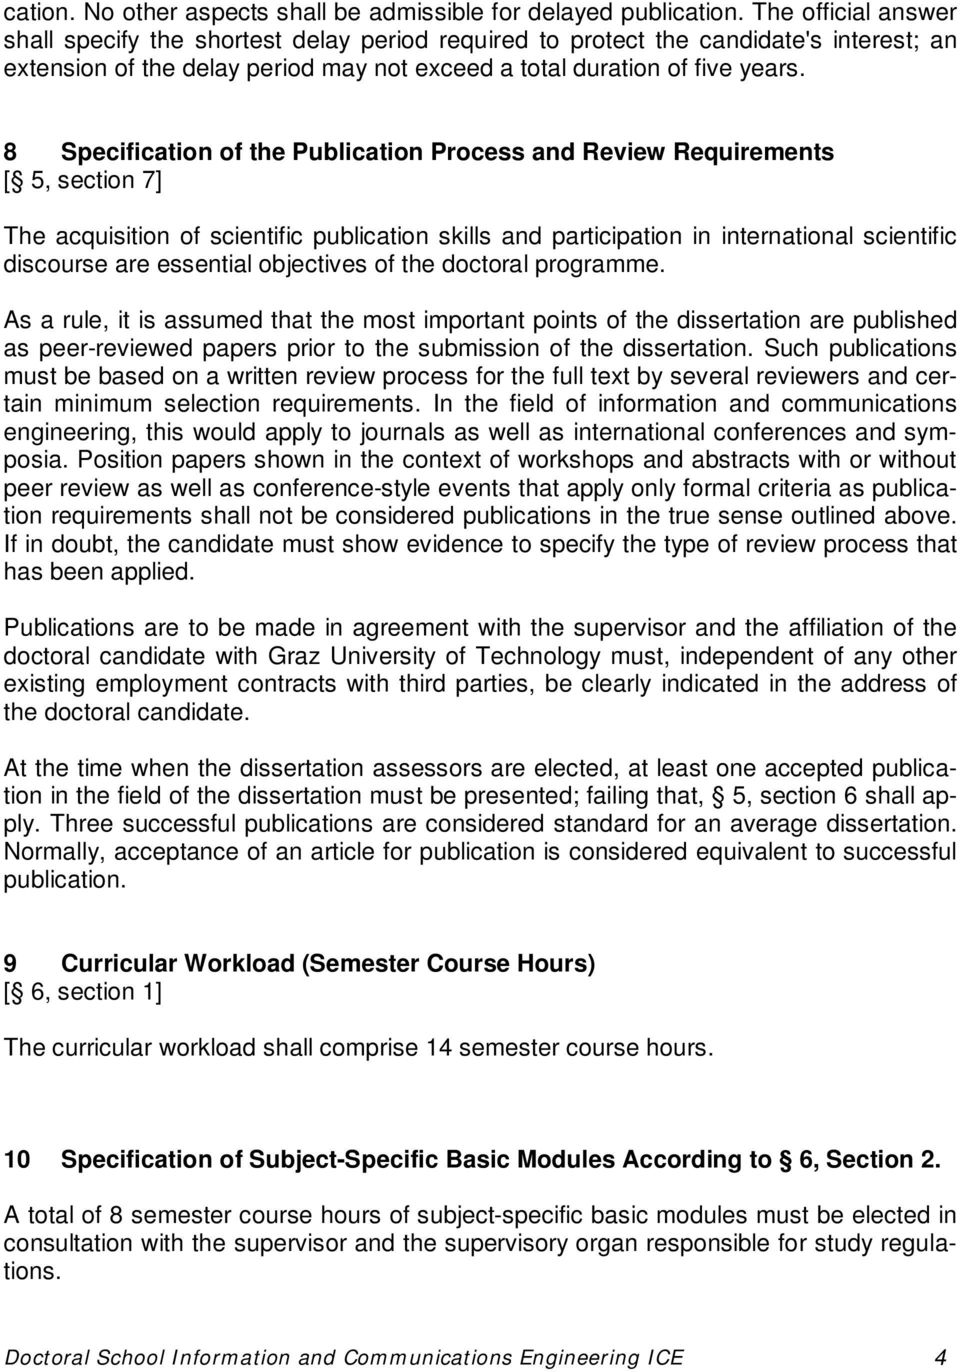 8 Specification of the Publication Process and Review Requirements [ 5, section 7] The acquisition of scientific publication skills and participation in international scientific discourse are